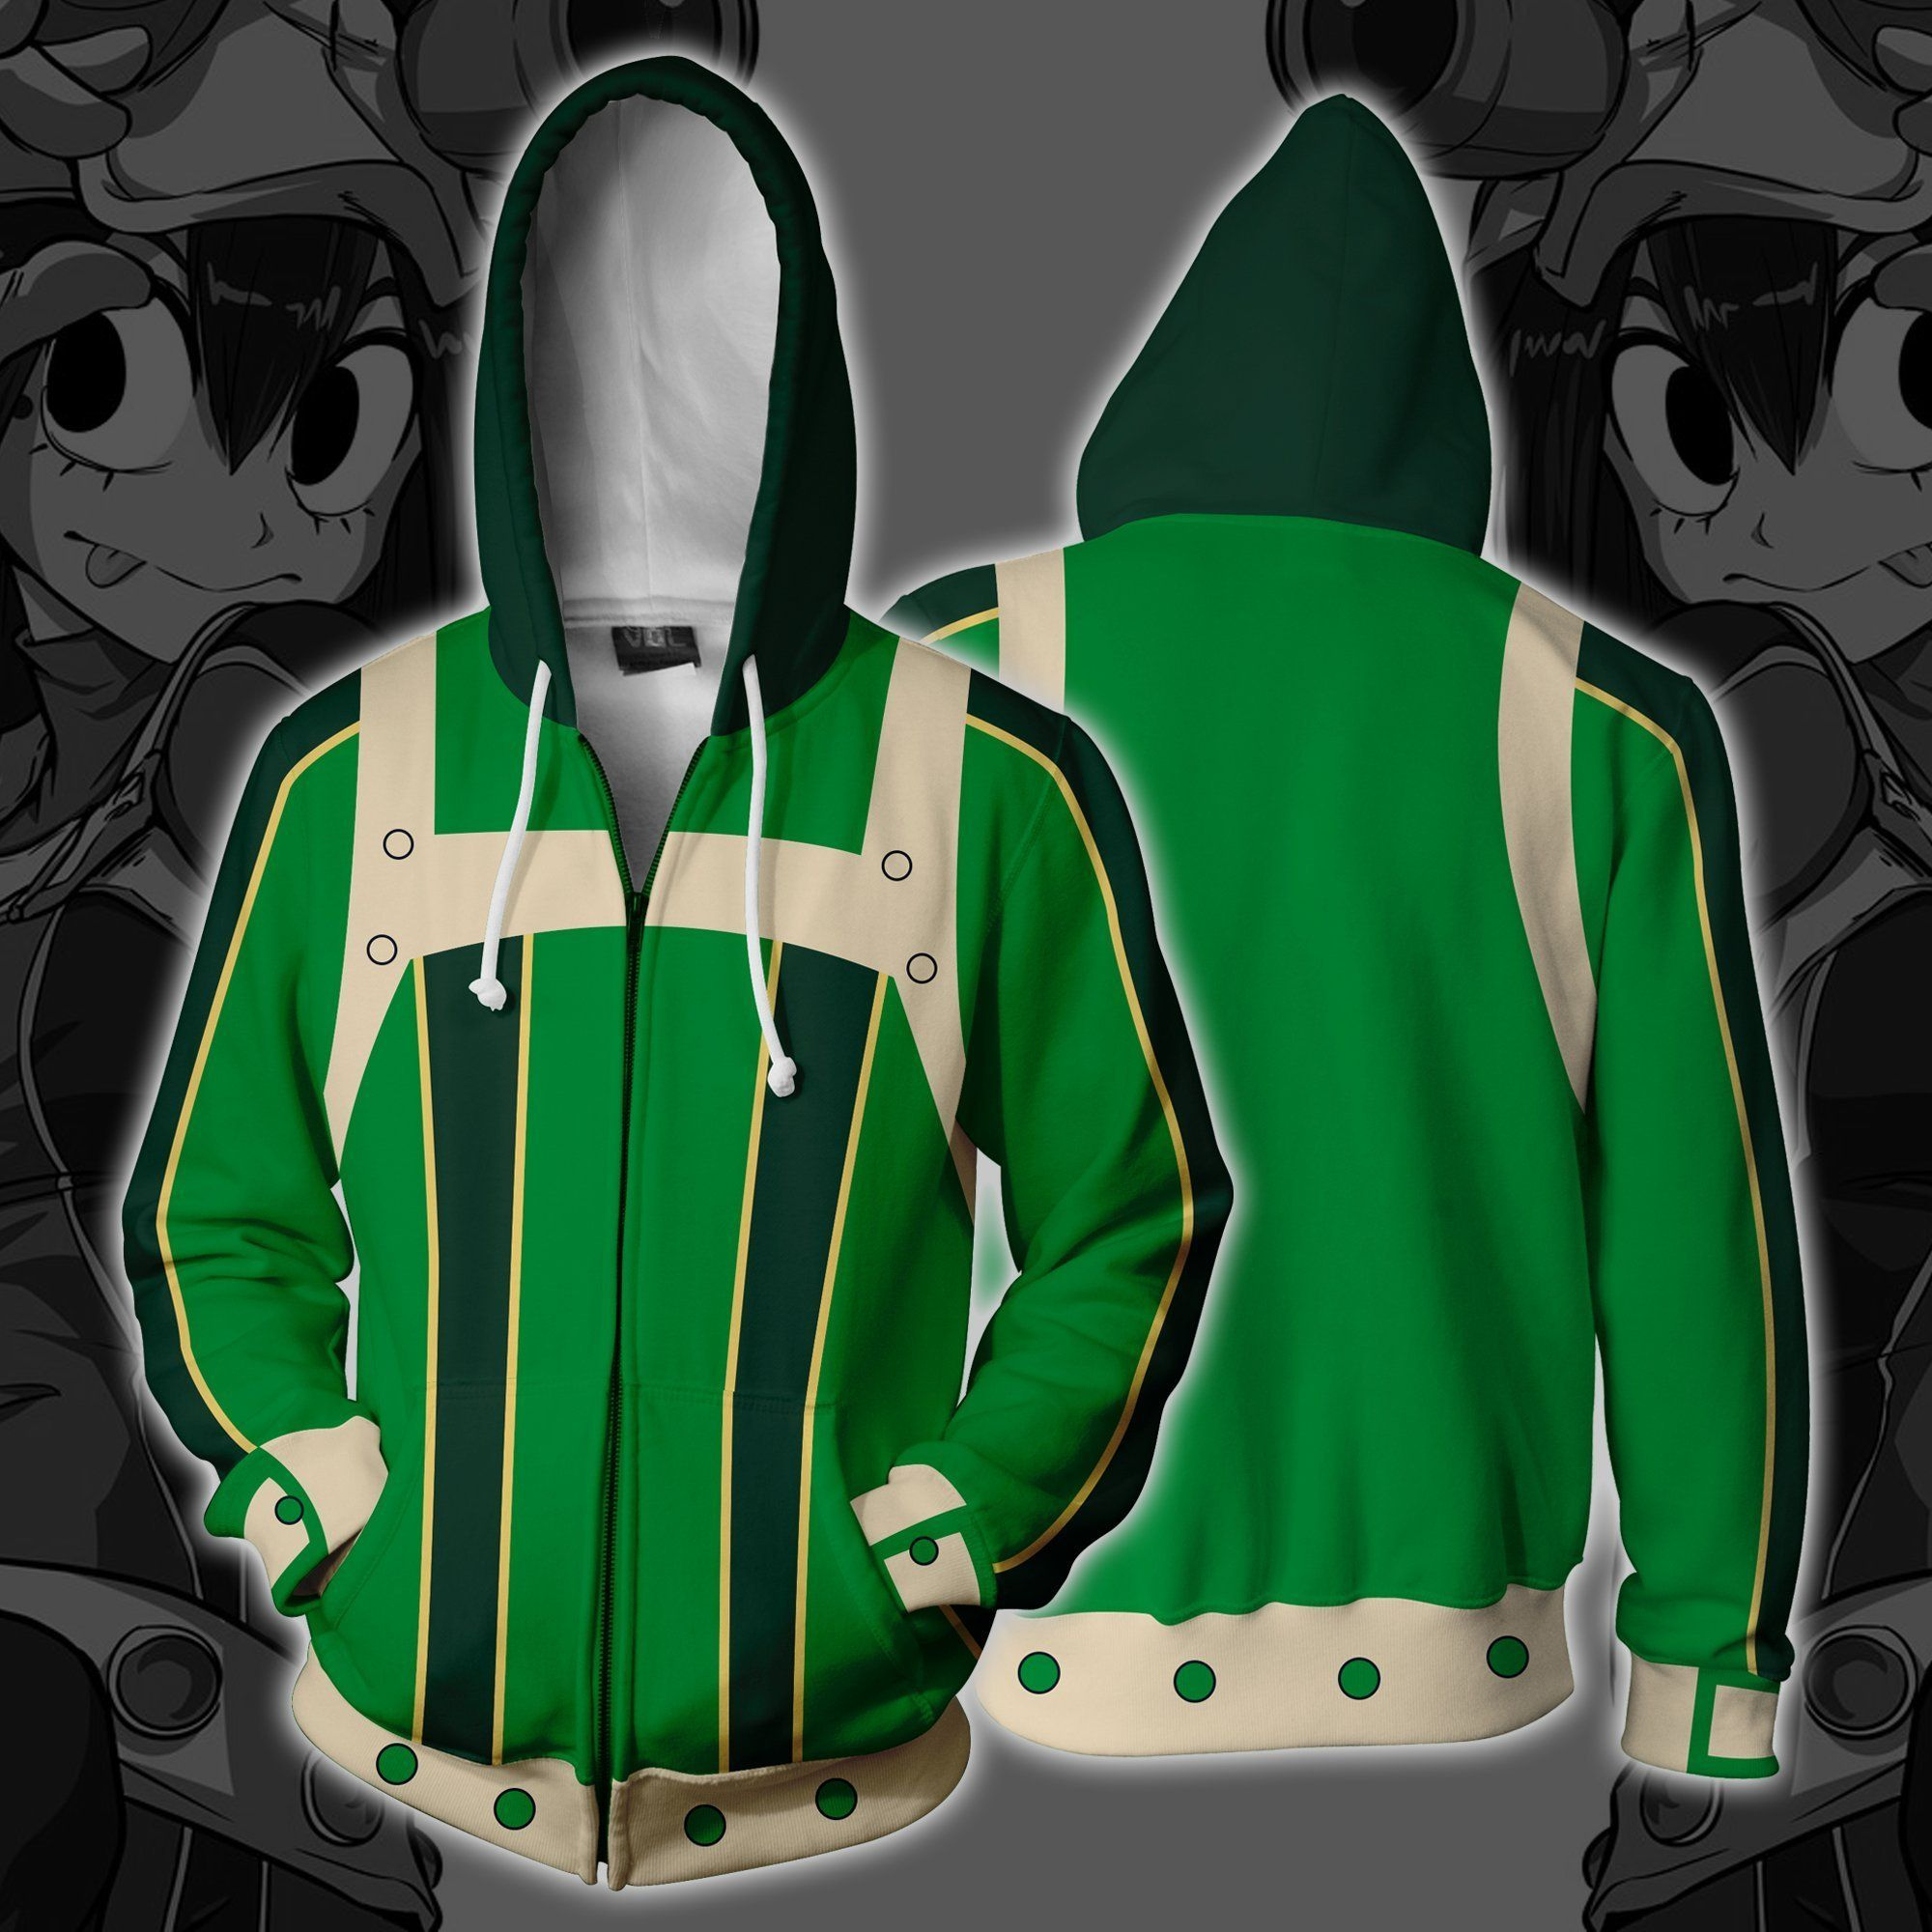 ebdae02d54 Tsuyo Asui Boku No Hero Hoodie | Gift Ideas | Hoodies, Anime cosplay ...